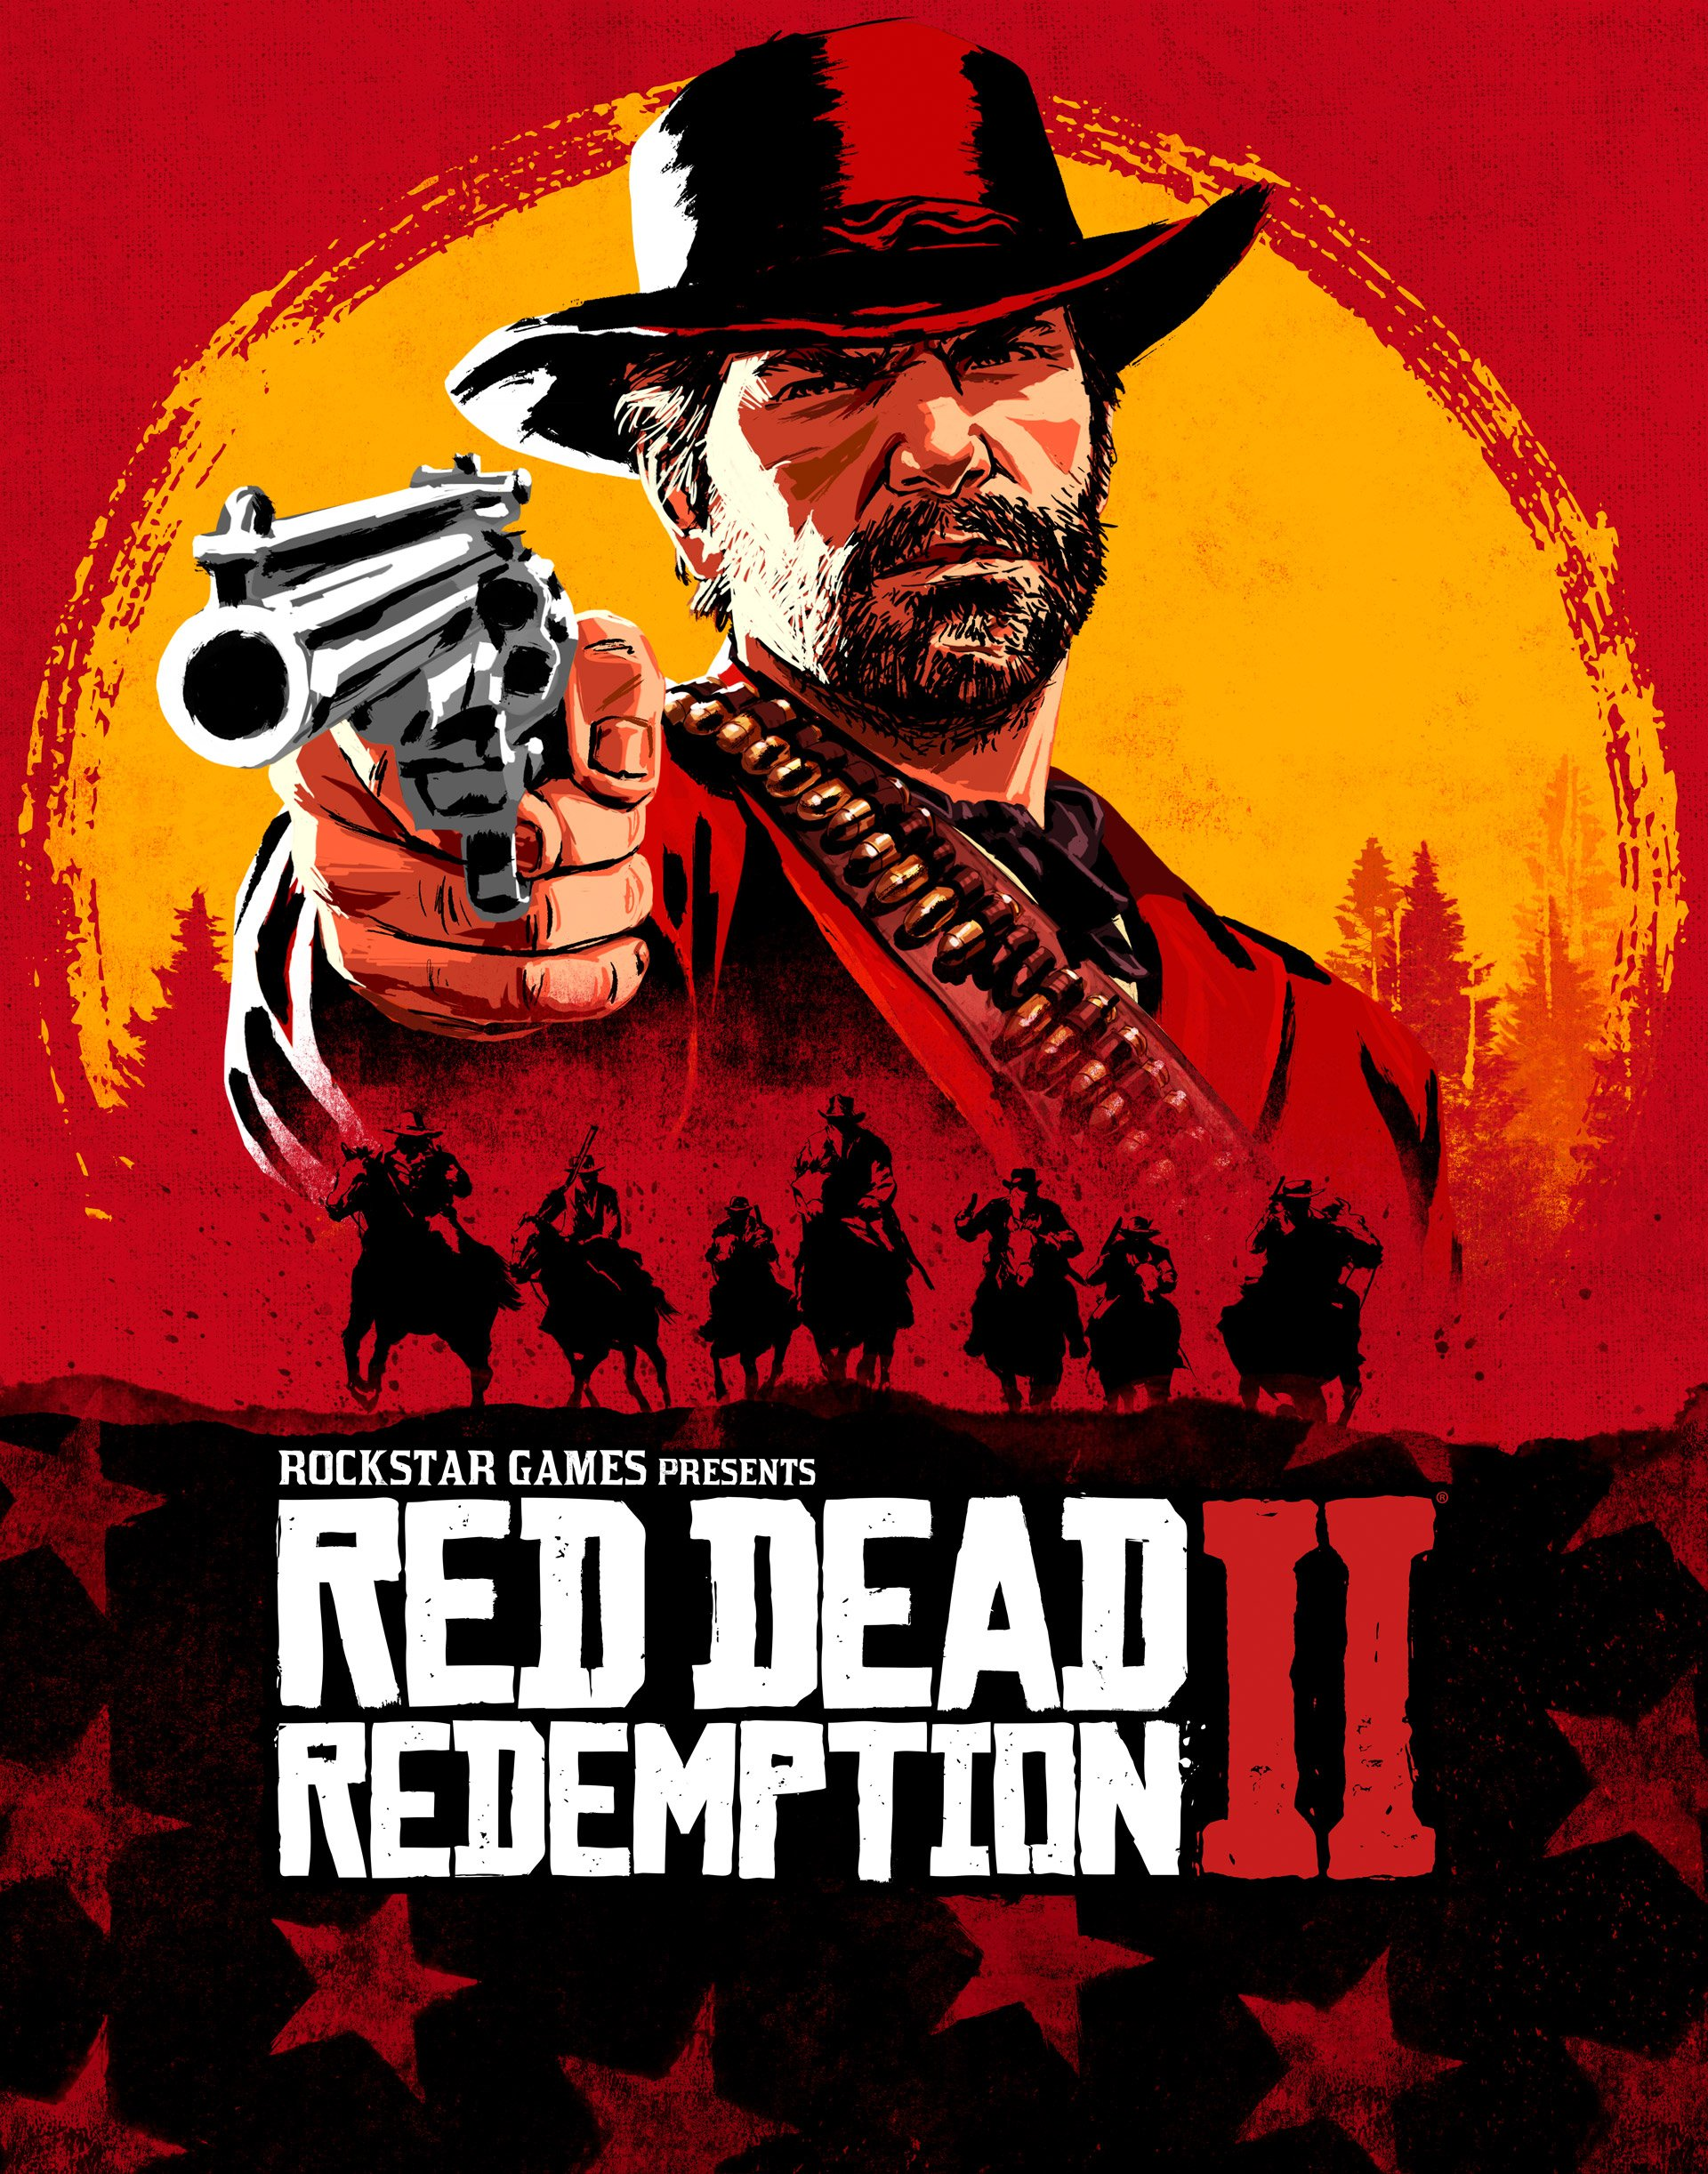 Red Dead Redemption 2: Ultimate Edition v.1.0.1311.23 (2019) RePack от R.G. Механики